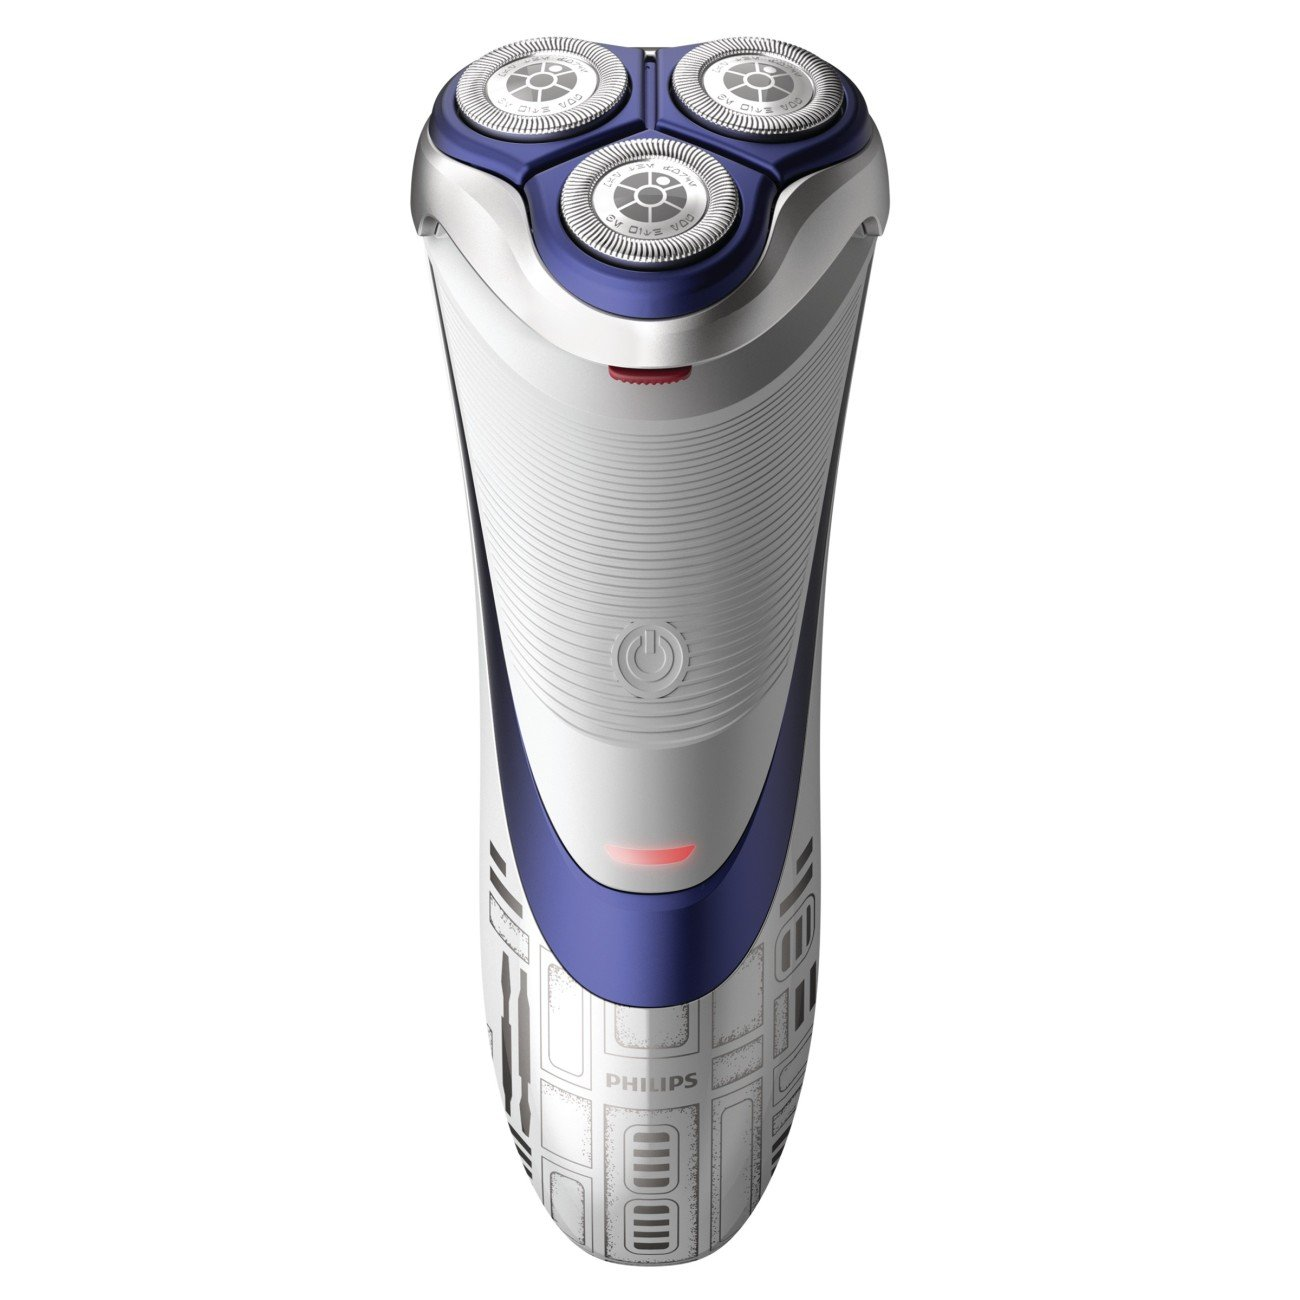 Philips Norelco Special Edition Star Wars R2-D2 Dry Electric Shaver, SW3700/87, with Pop-up Trimmer